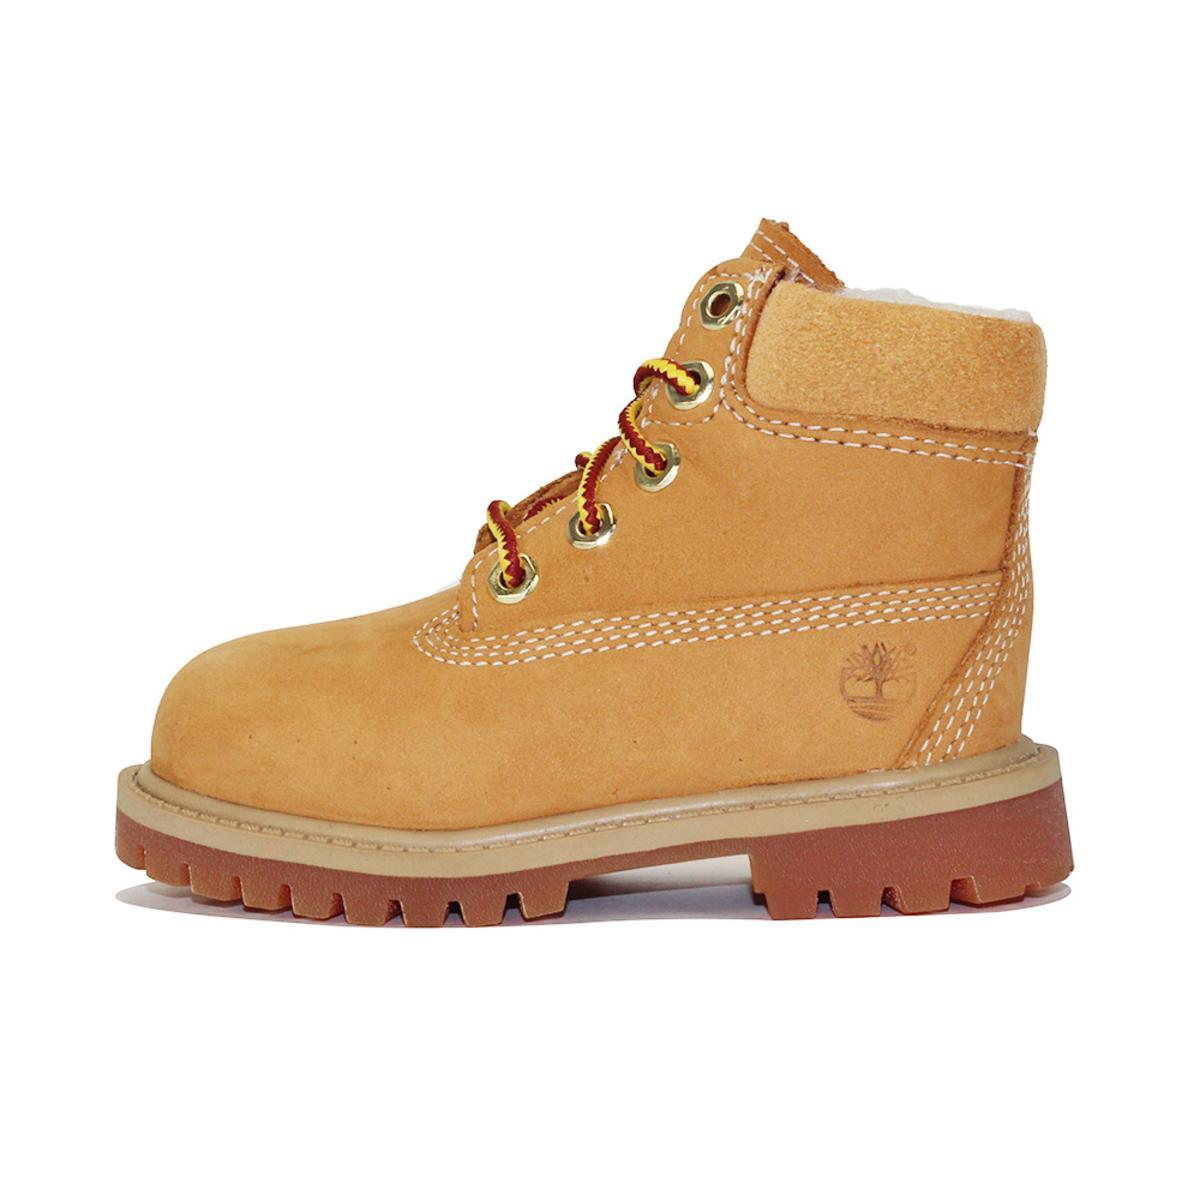 Timberland for Toddlers: 6-Inch Classic Fur Wheat Boot